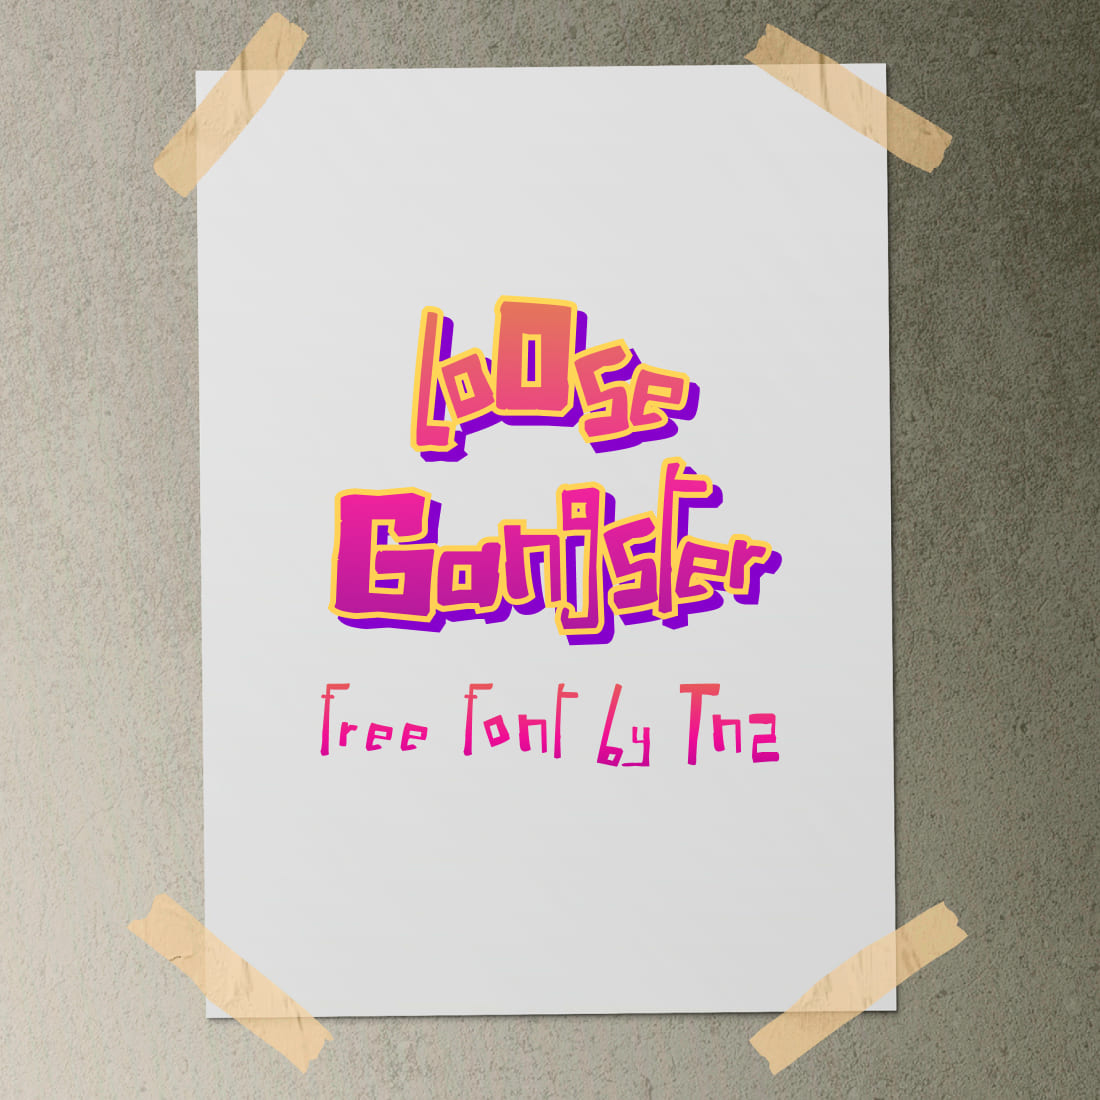 Free Gangster Font Bright Collage Image.